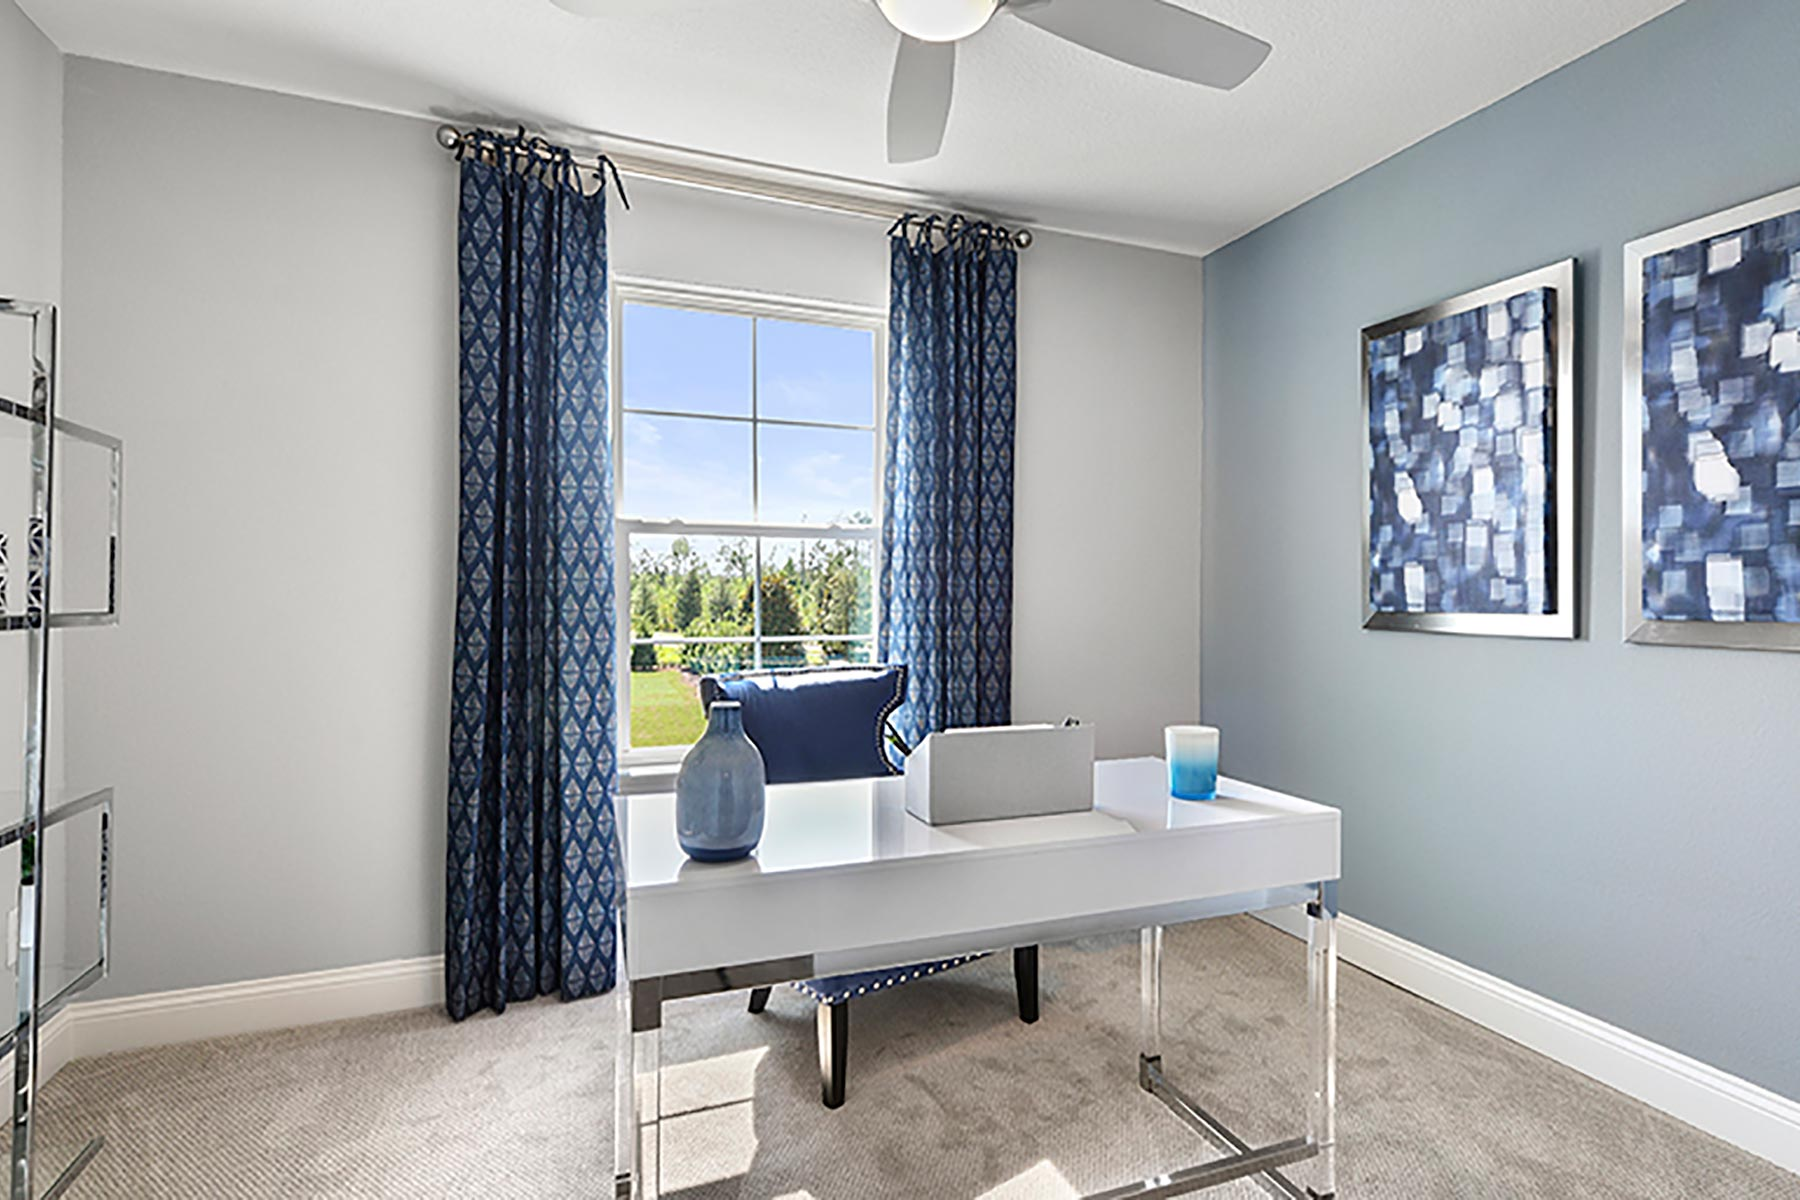 Retreat Plan Study Room at Wells Creek in Jacksonville Florida by Mattamy Homes